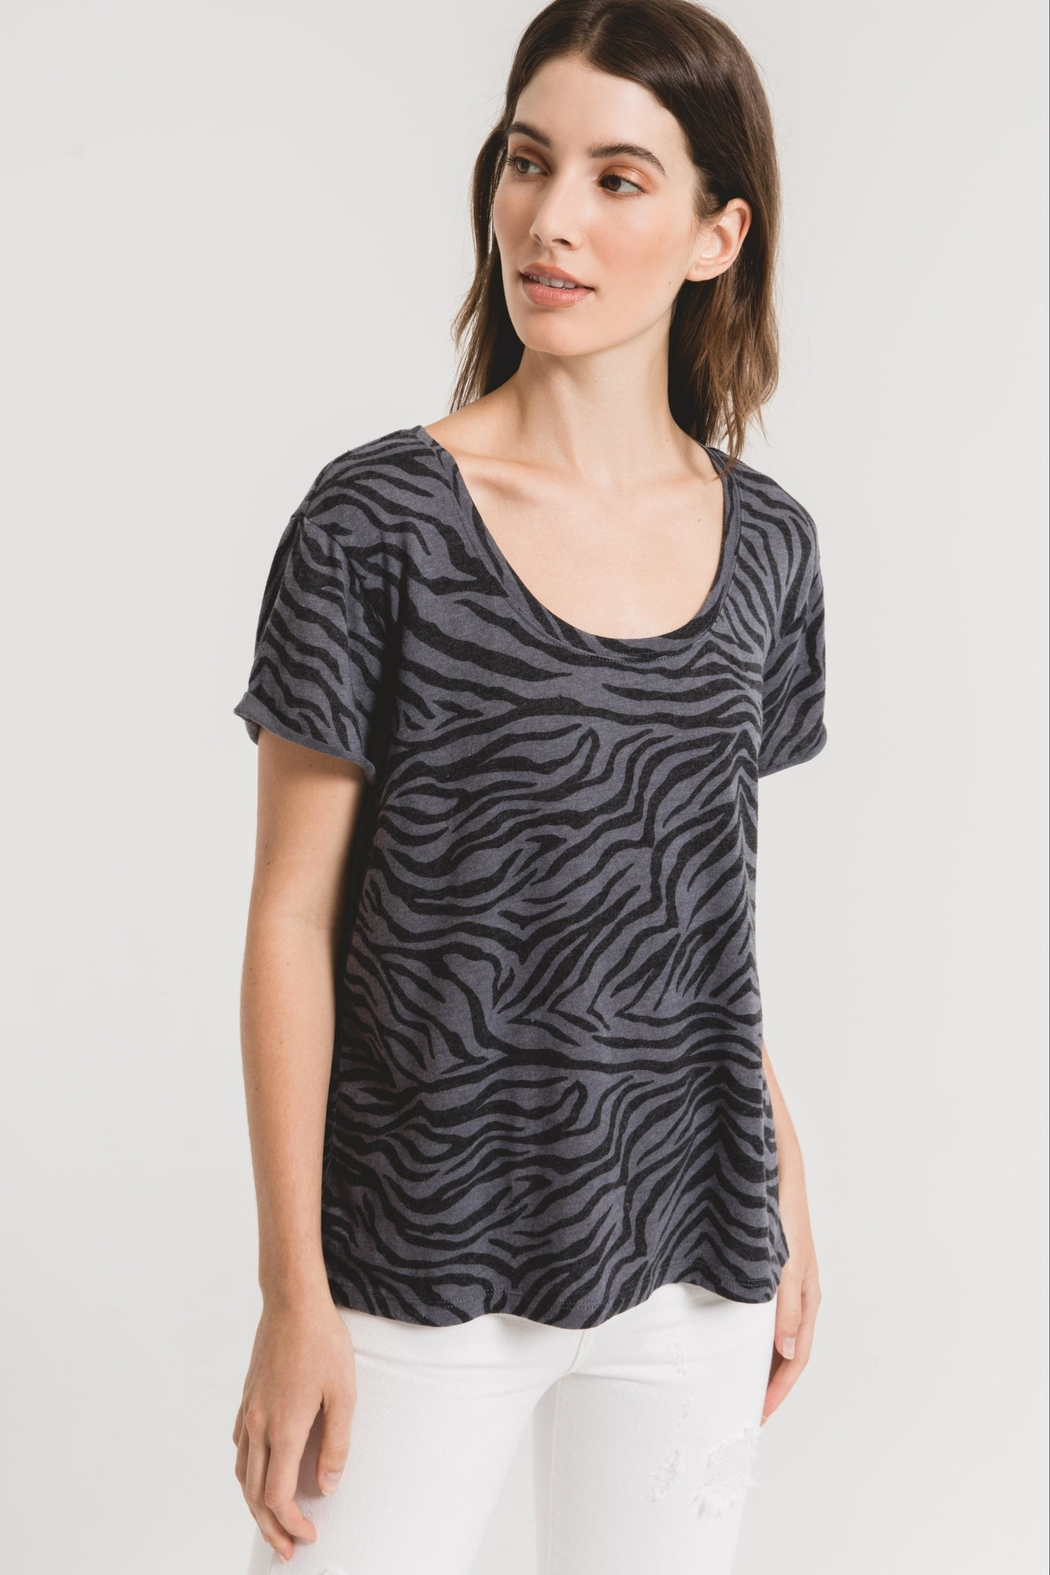 z supply Zebra Scoop Neck Tee-Ombre Blue - Front Cropped Image